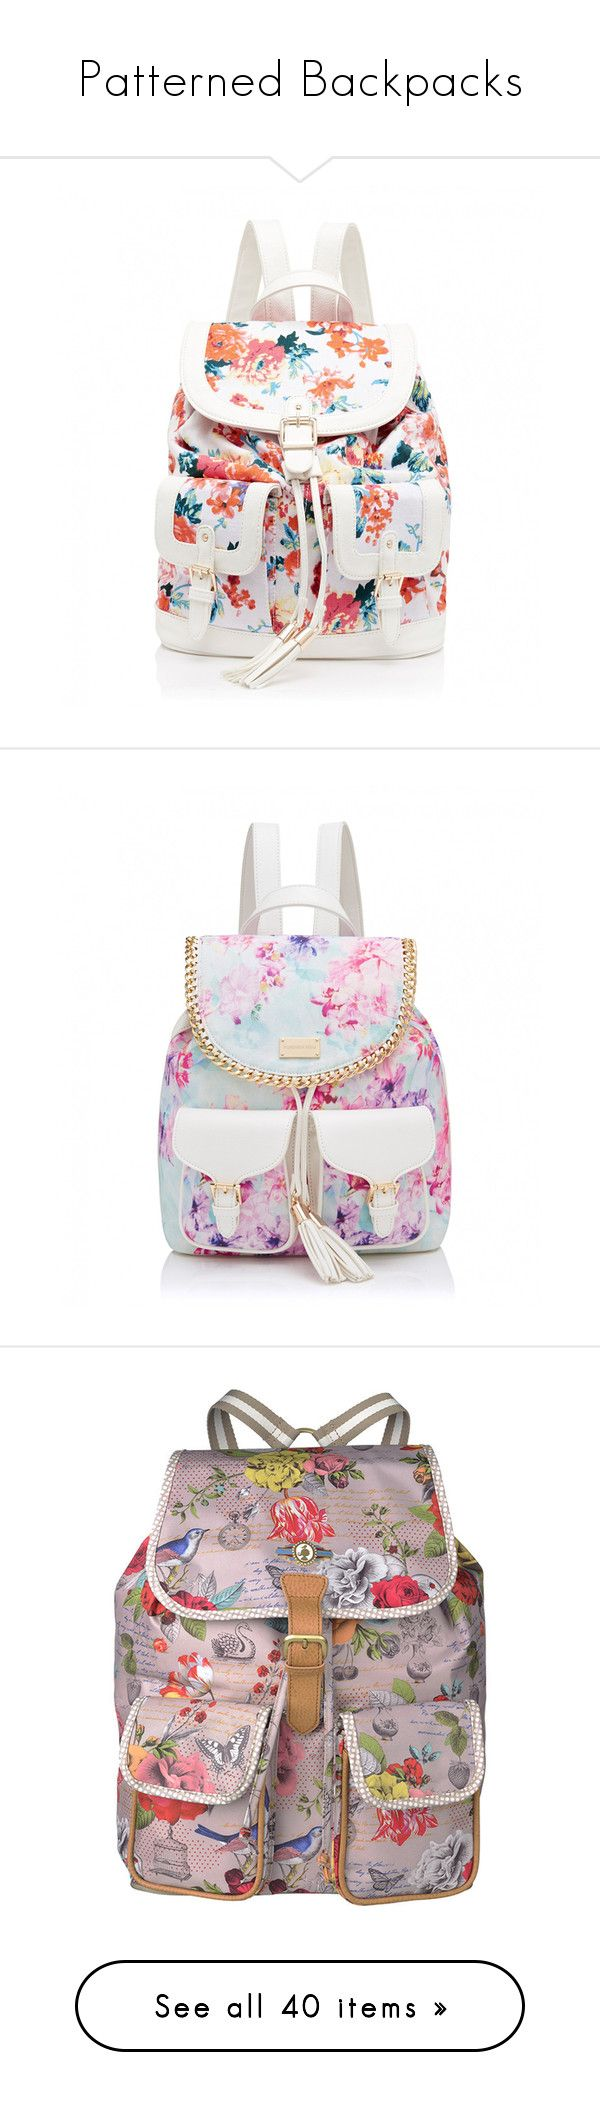 """Patterned Backpacks"" by girlwithherheadintheclouds ❤ liked on Polyvore featuring bags, backpacks, accessories, mochila, white floral print, day pack backpack, draw string backpack, knapsack bag, white backpack and rucksack bags"